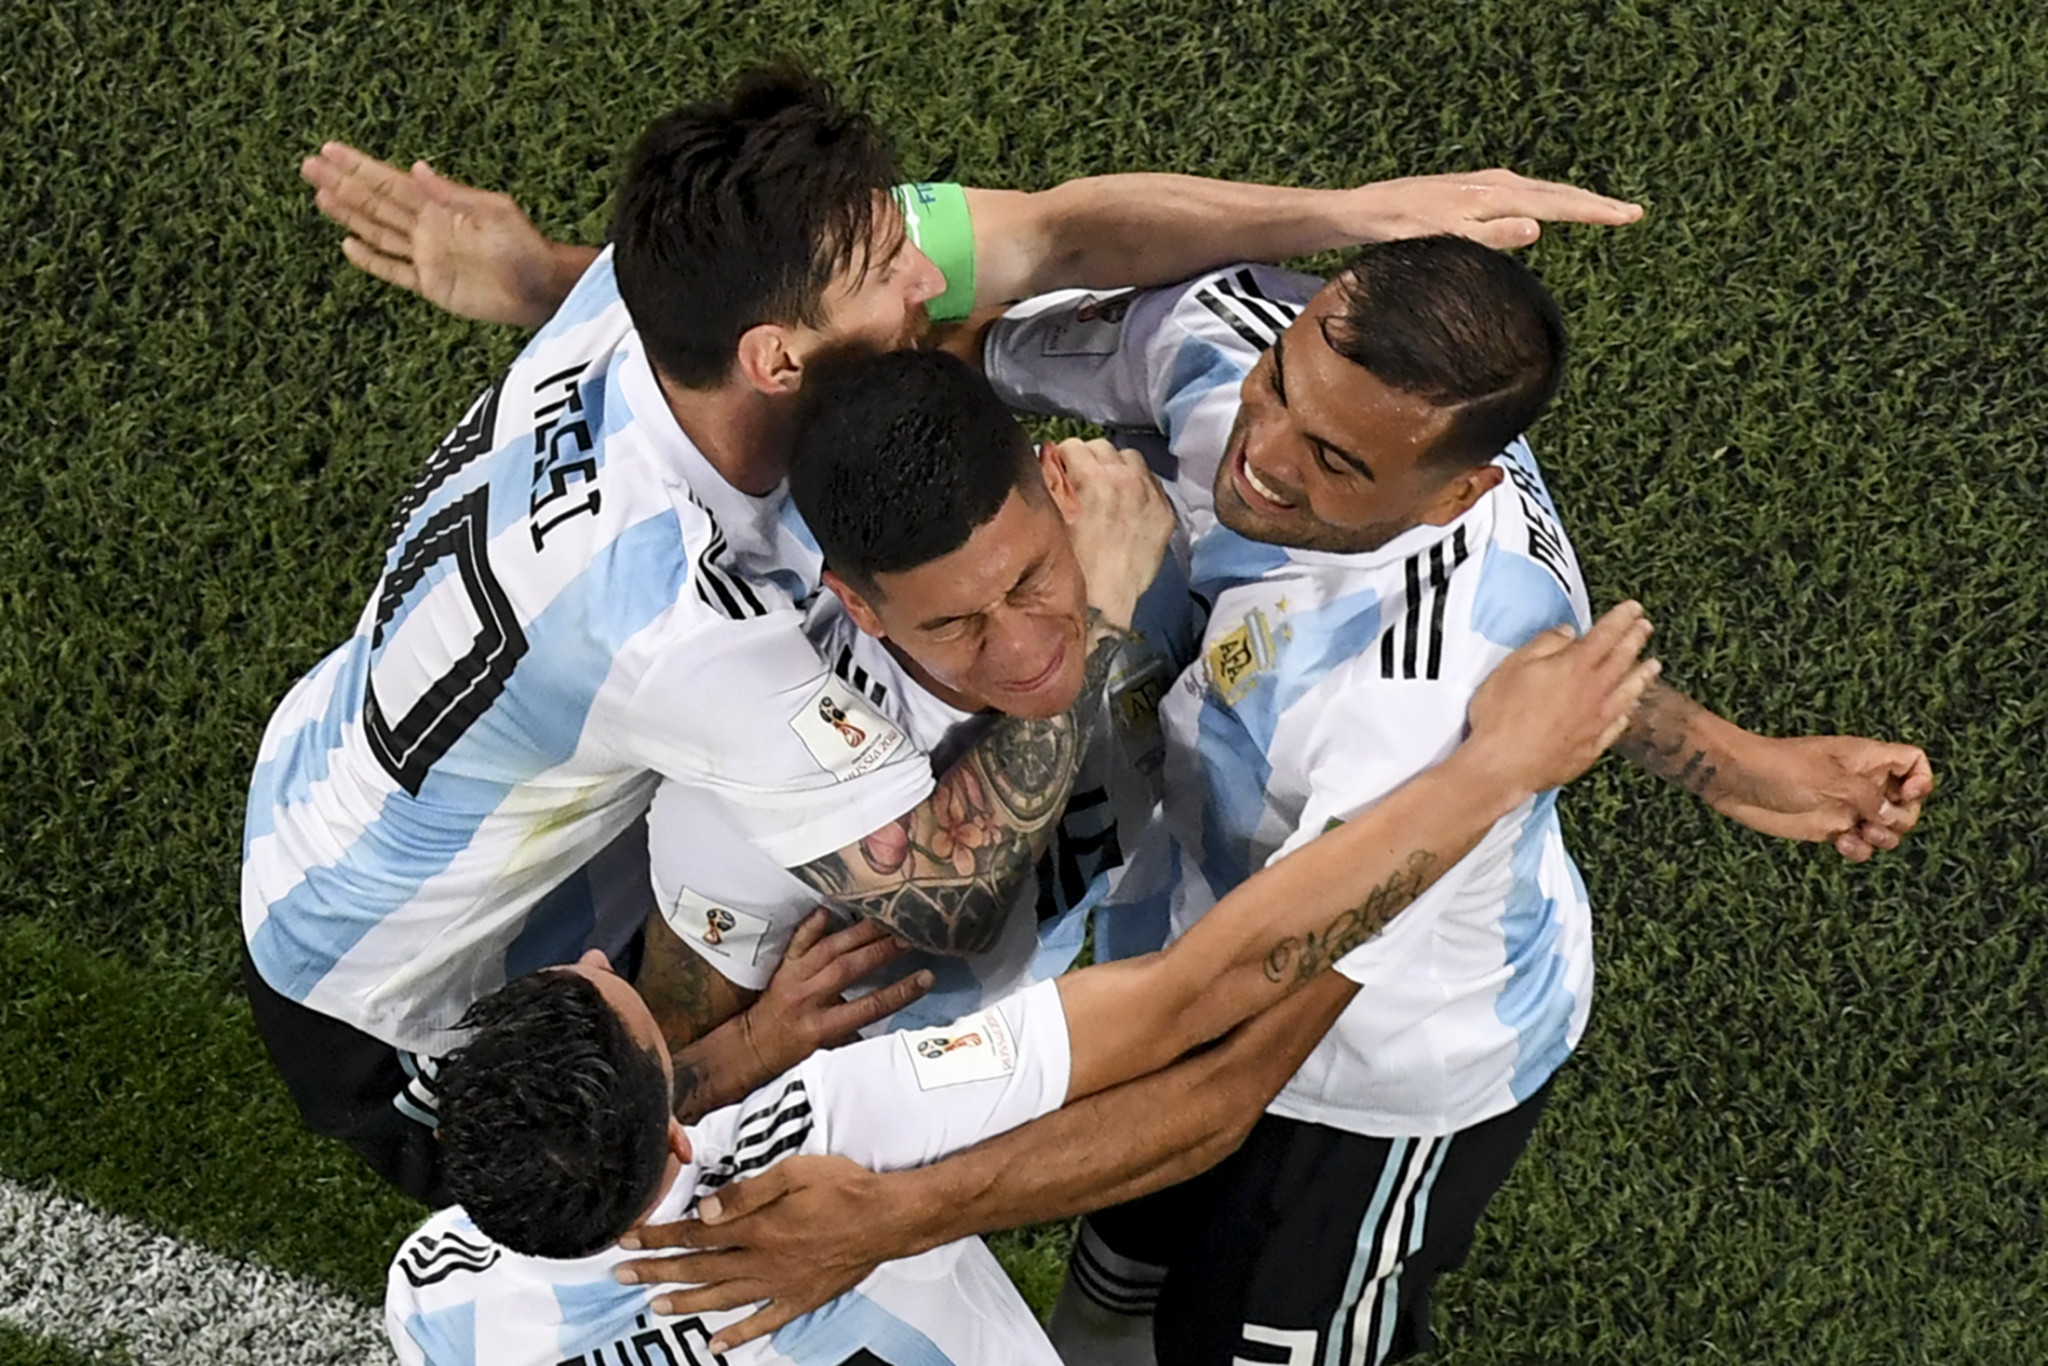 Marcos Rojo scored the crucial goal for Argentina to beat Nigeria 2-1 ©Getty Images